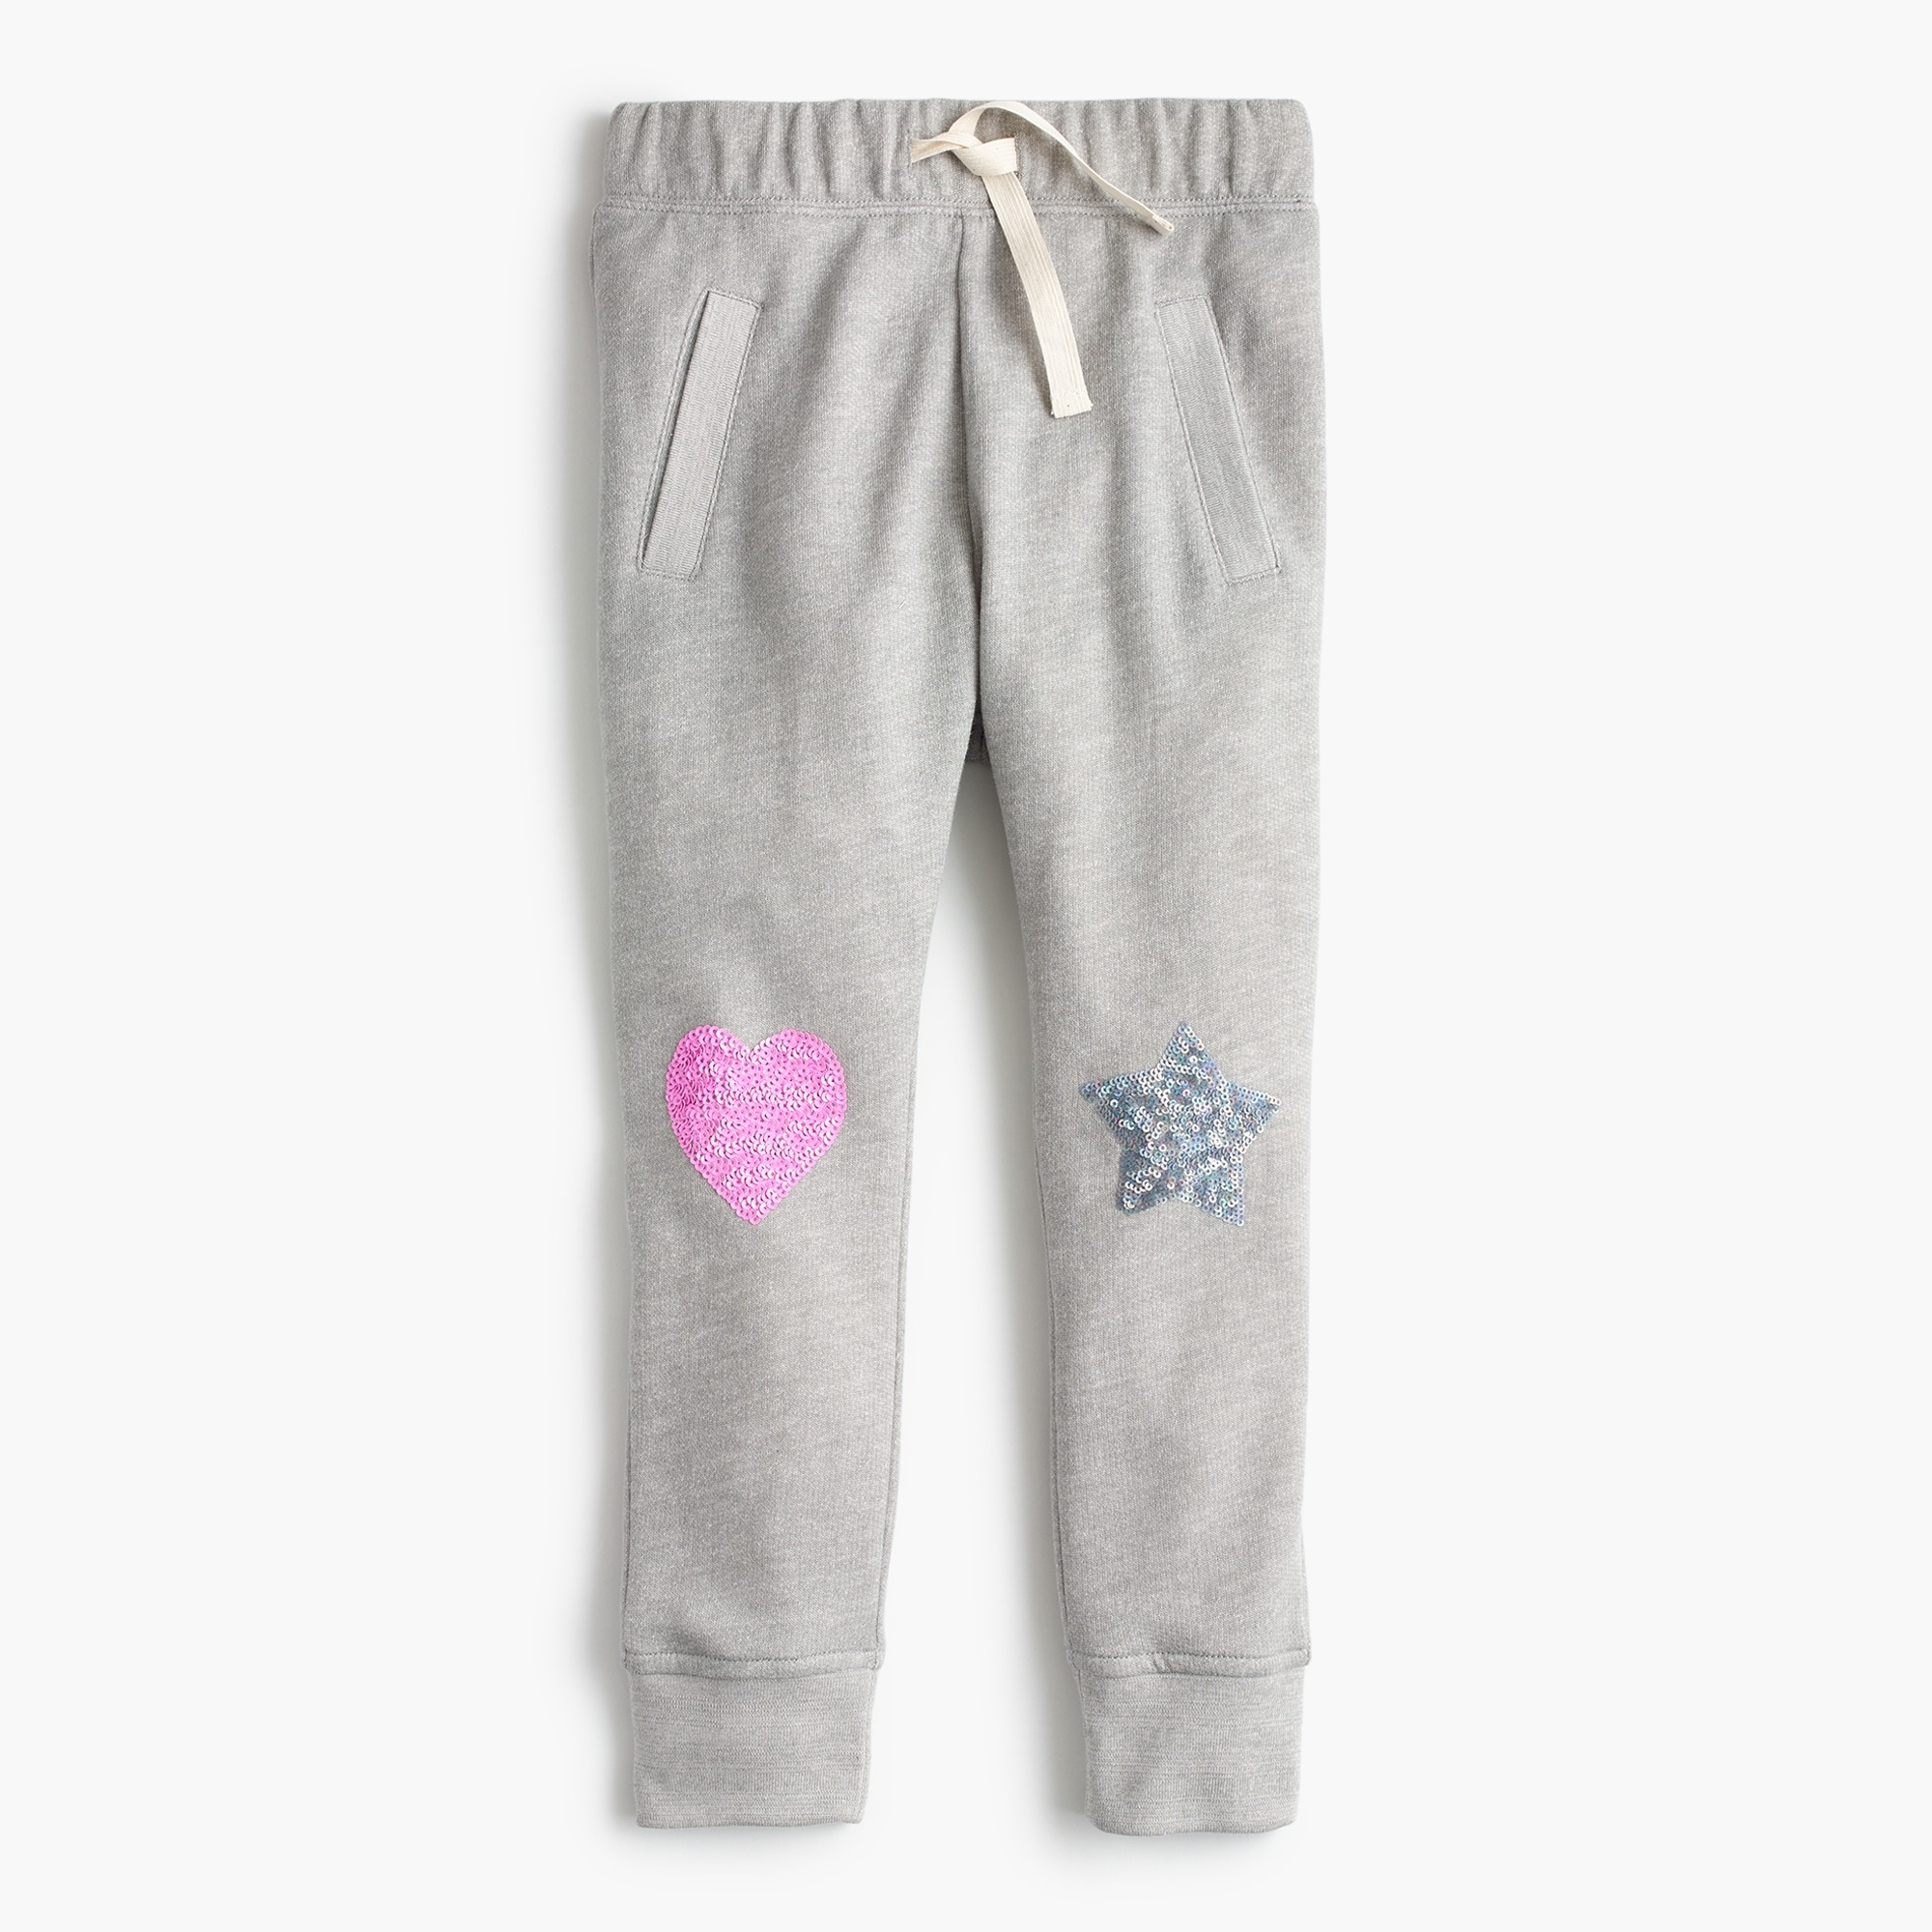 girls' sequin sweatpant : girl sweatpants